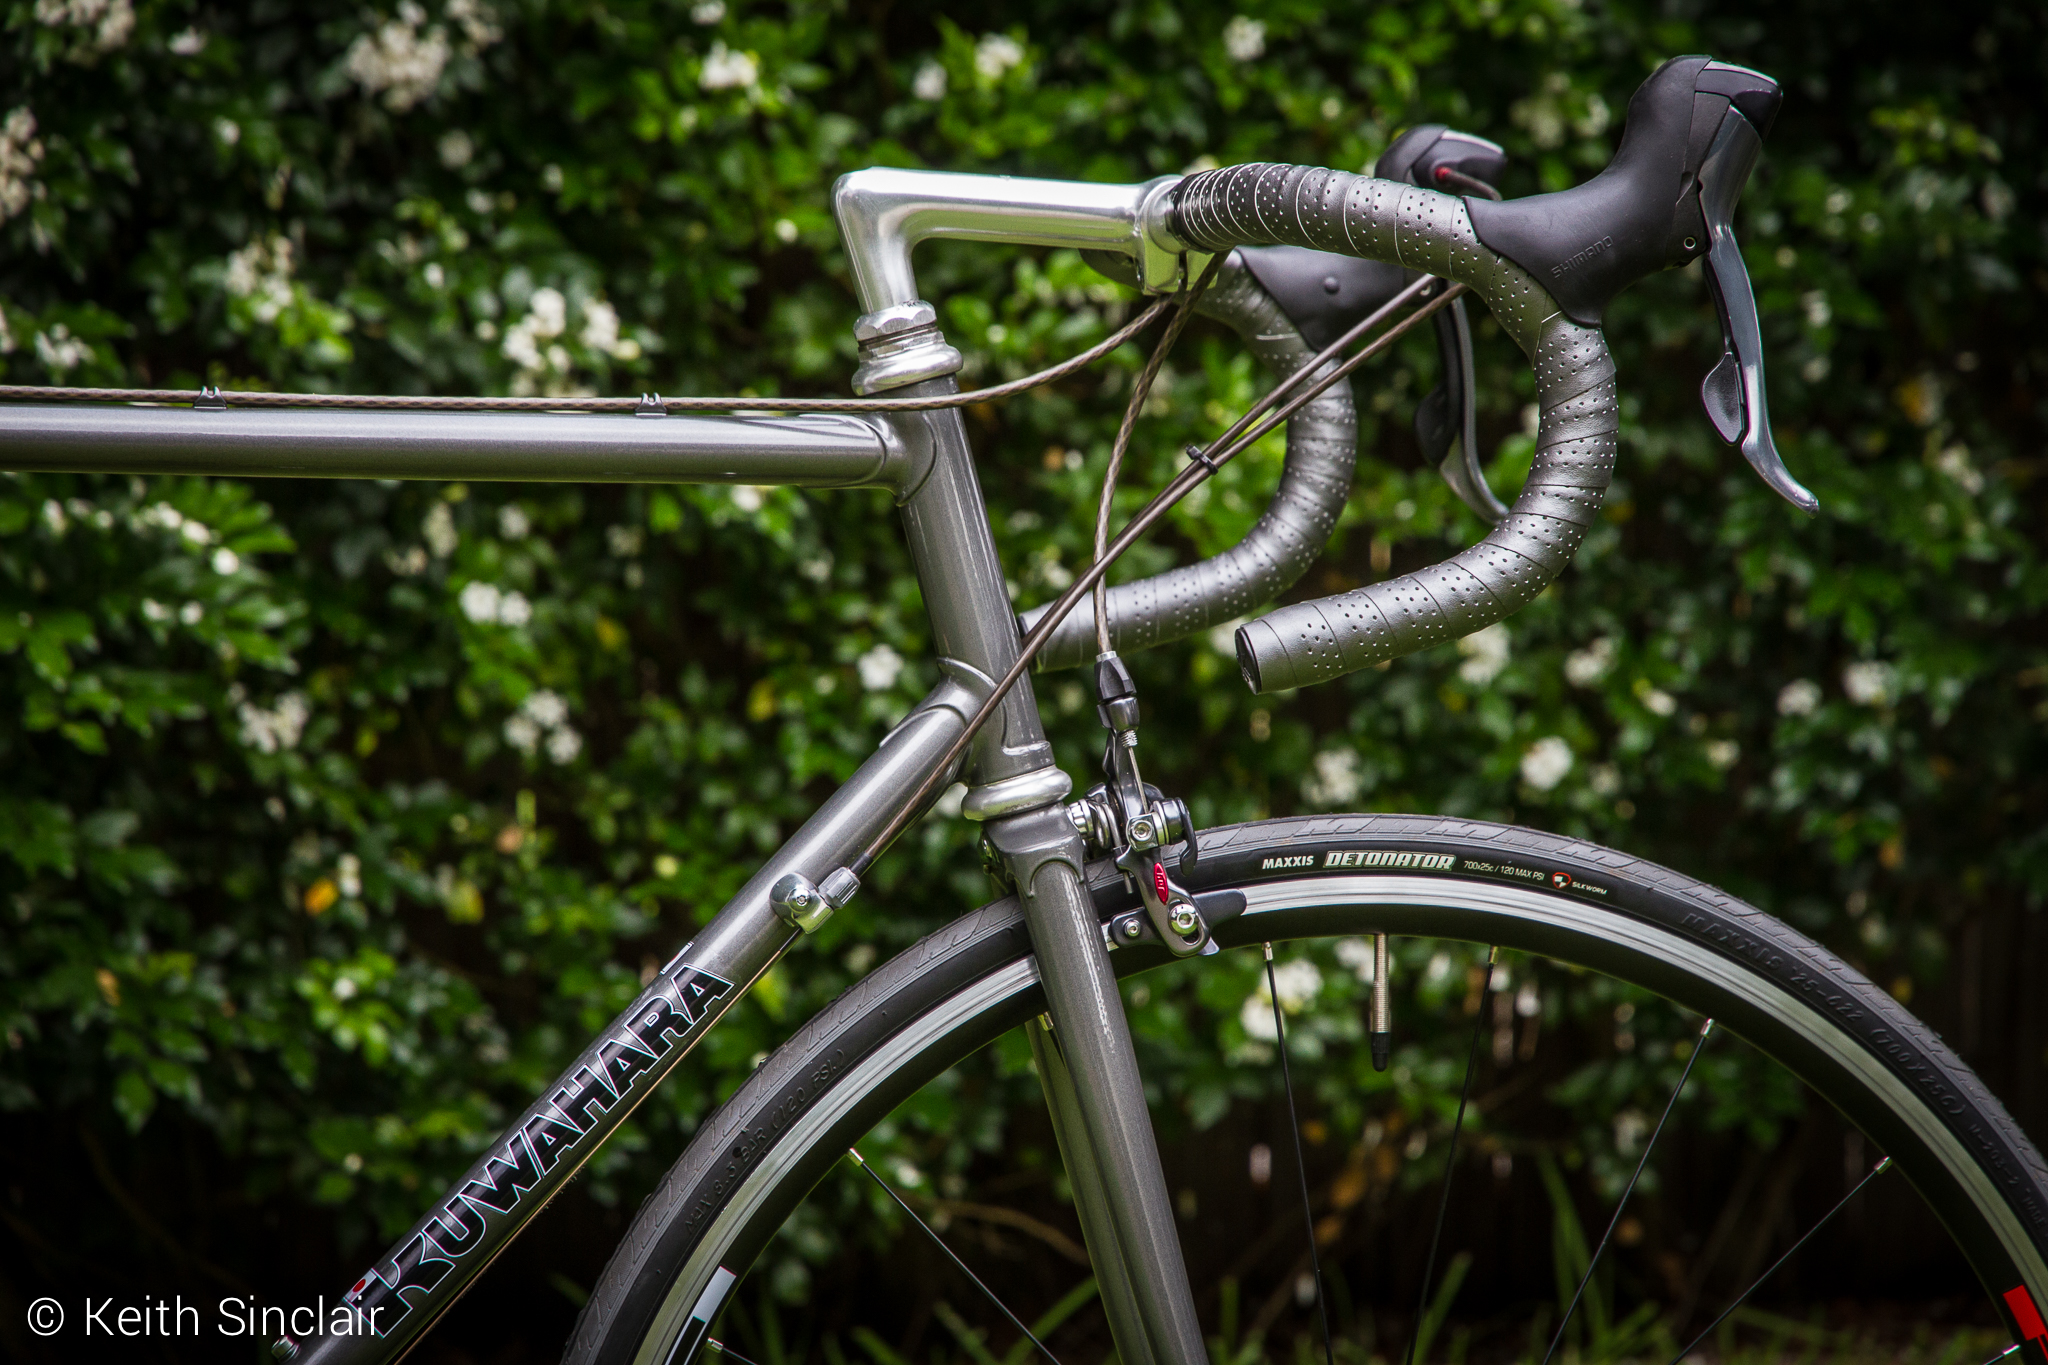 Classic Quill Cinelli Stem with Classic Cinelli Bars